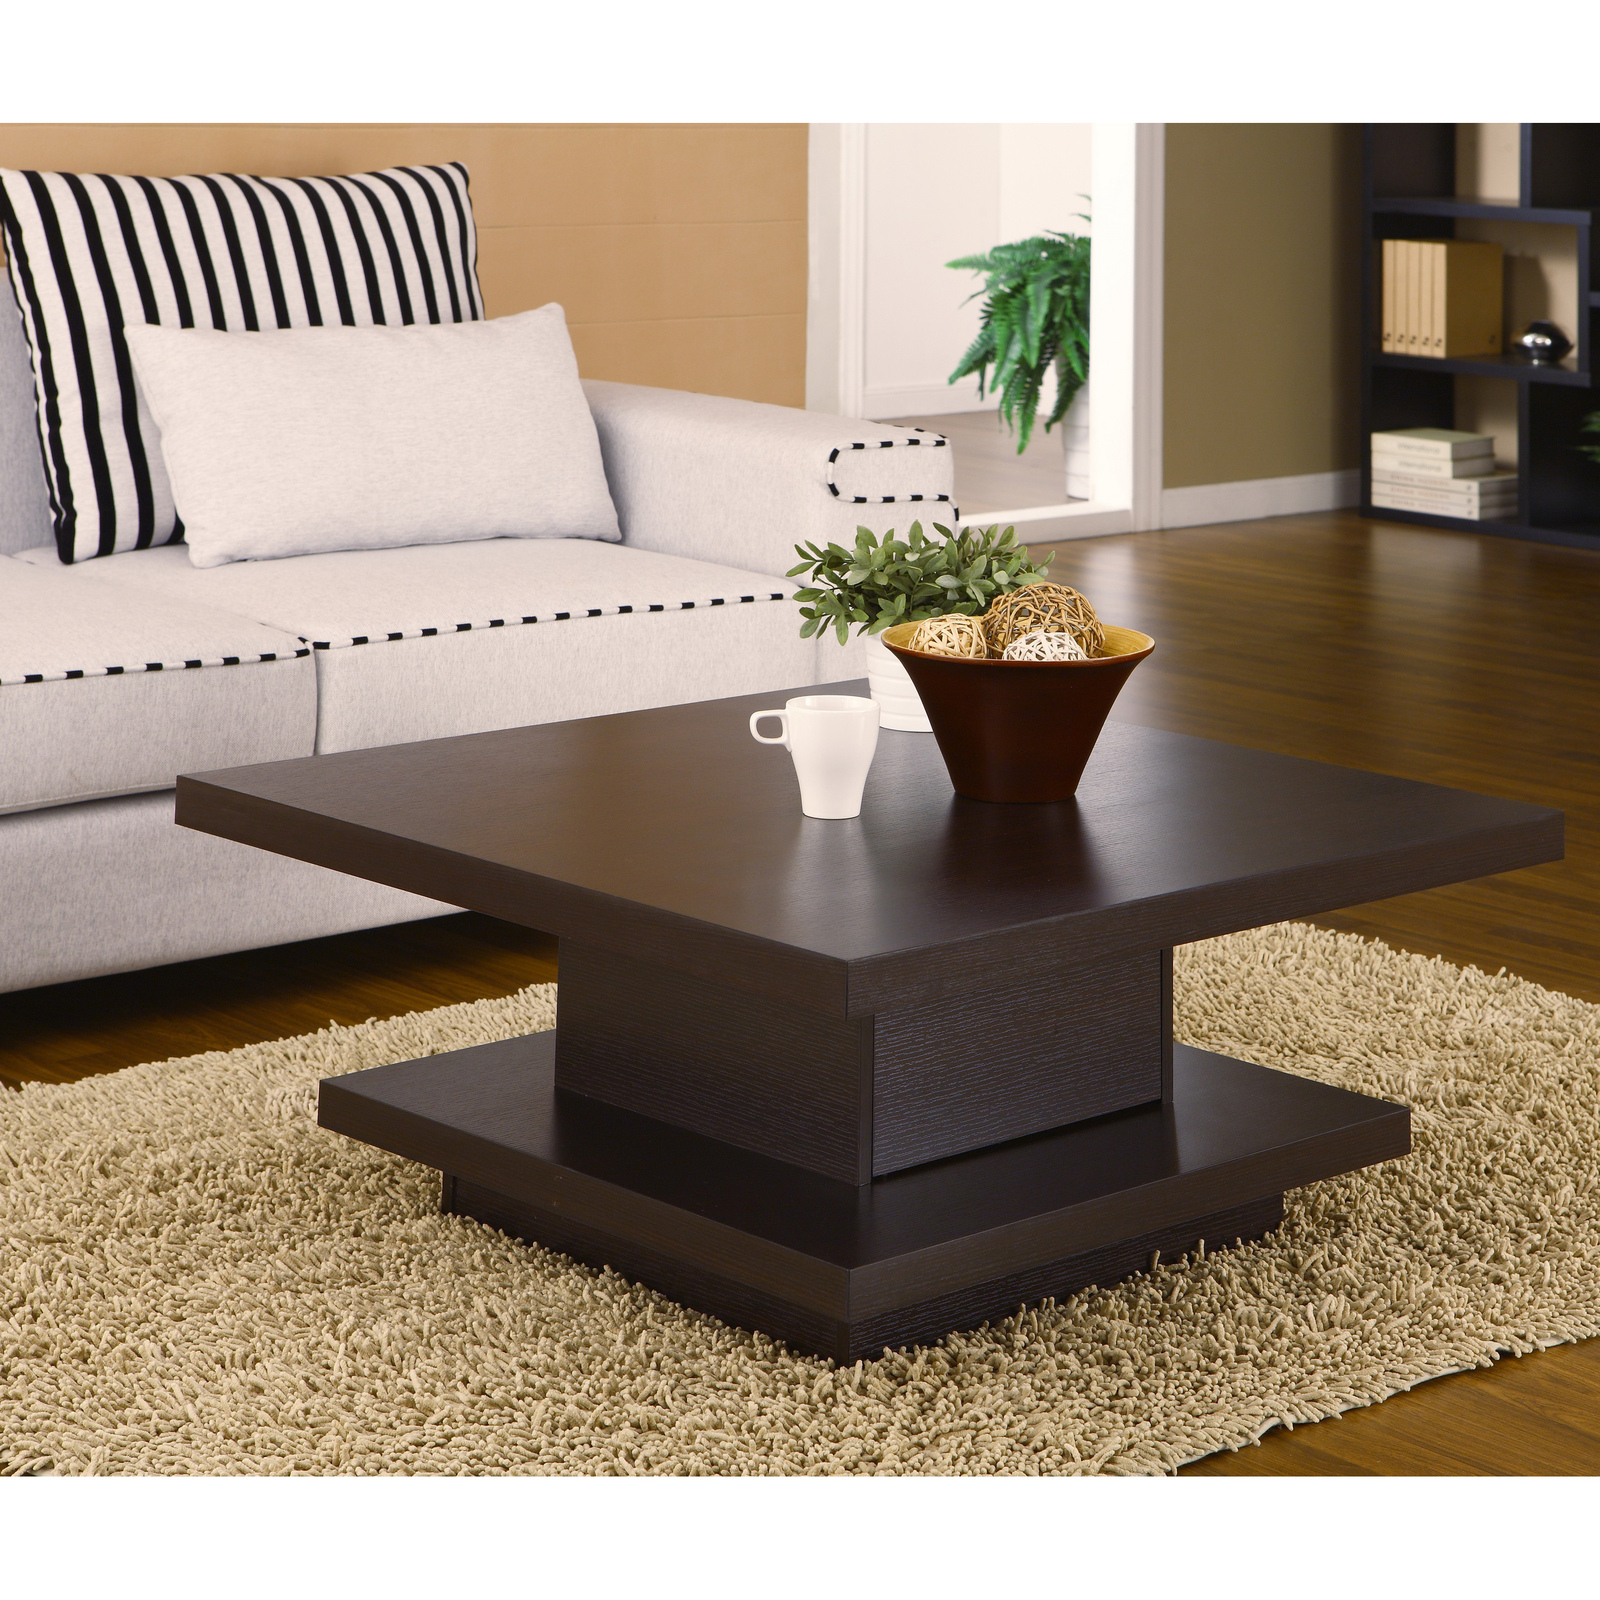 Contemporary modern wood coffee tables unique square style for Modern style coffee tables